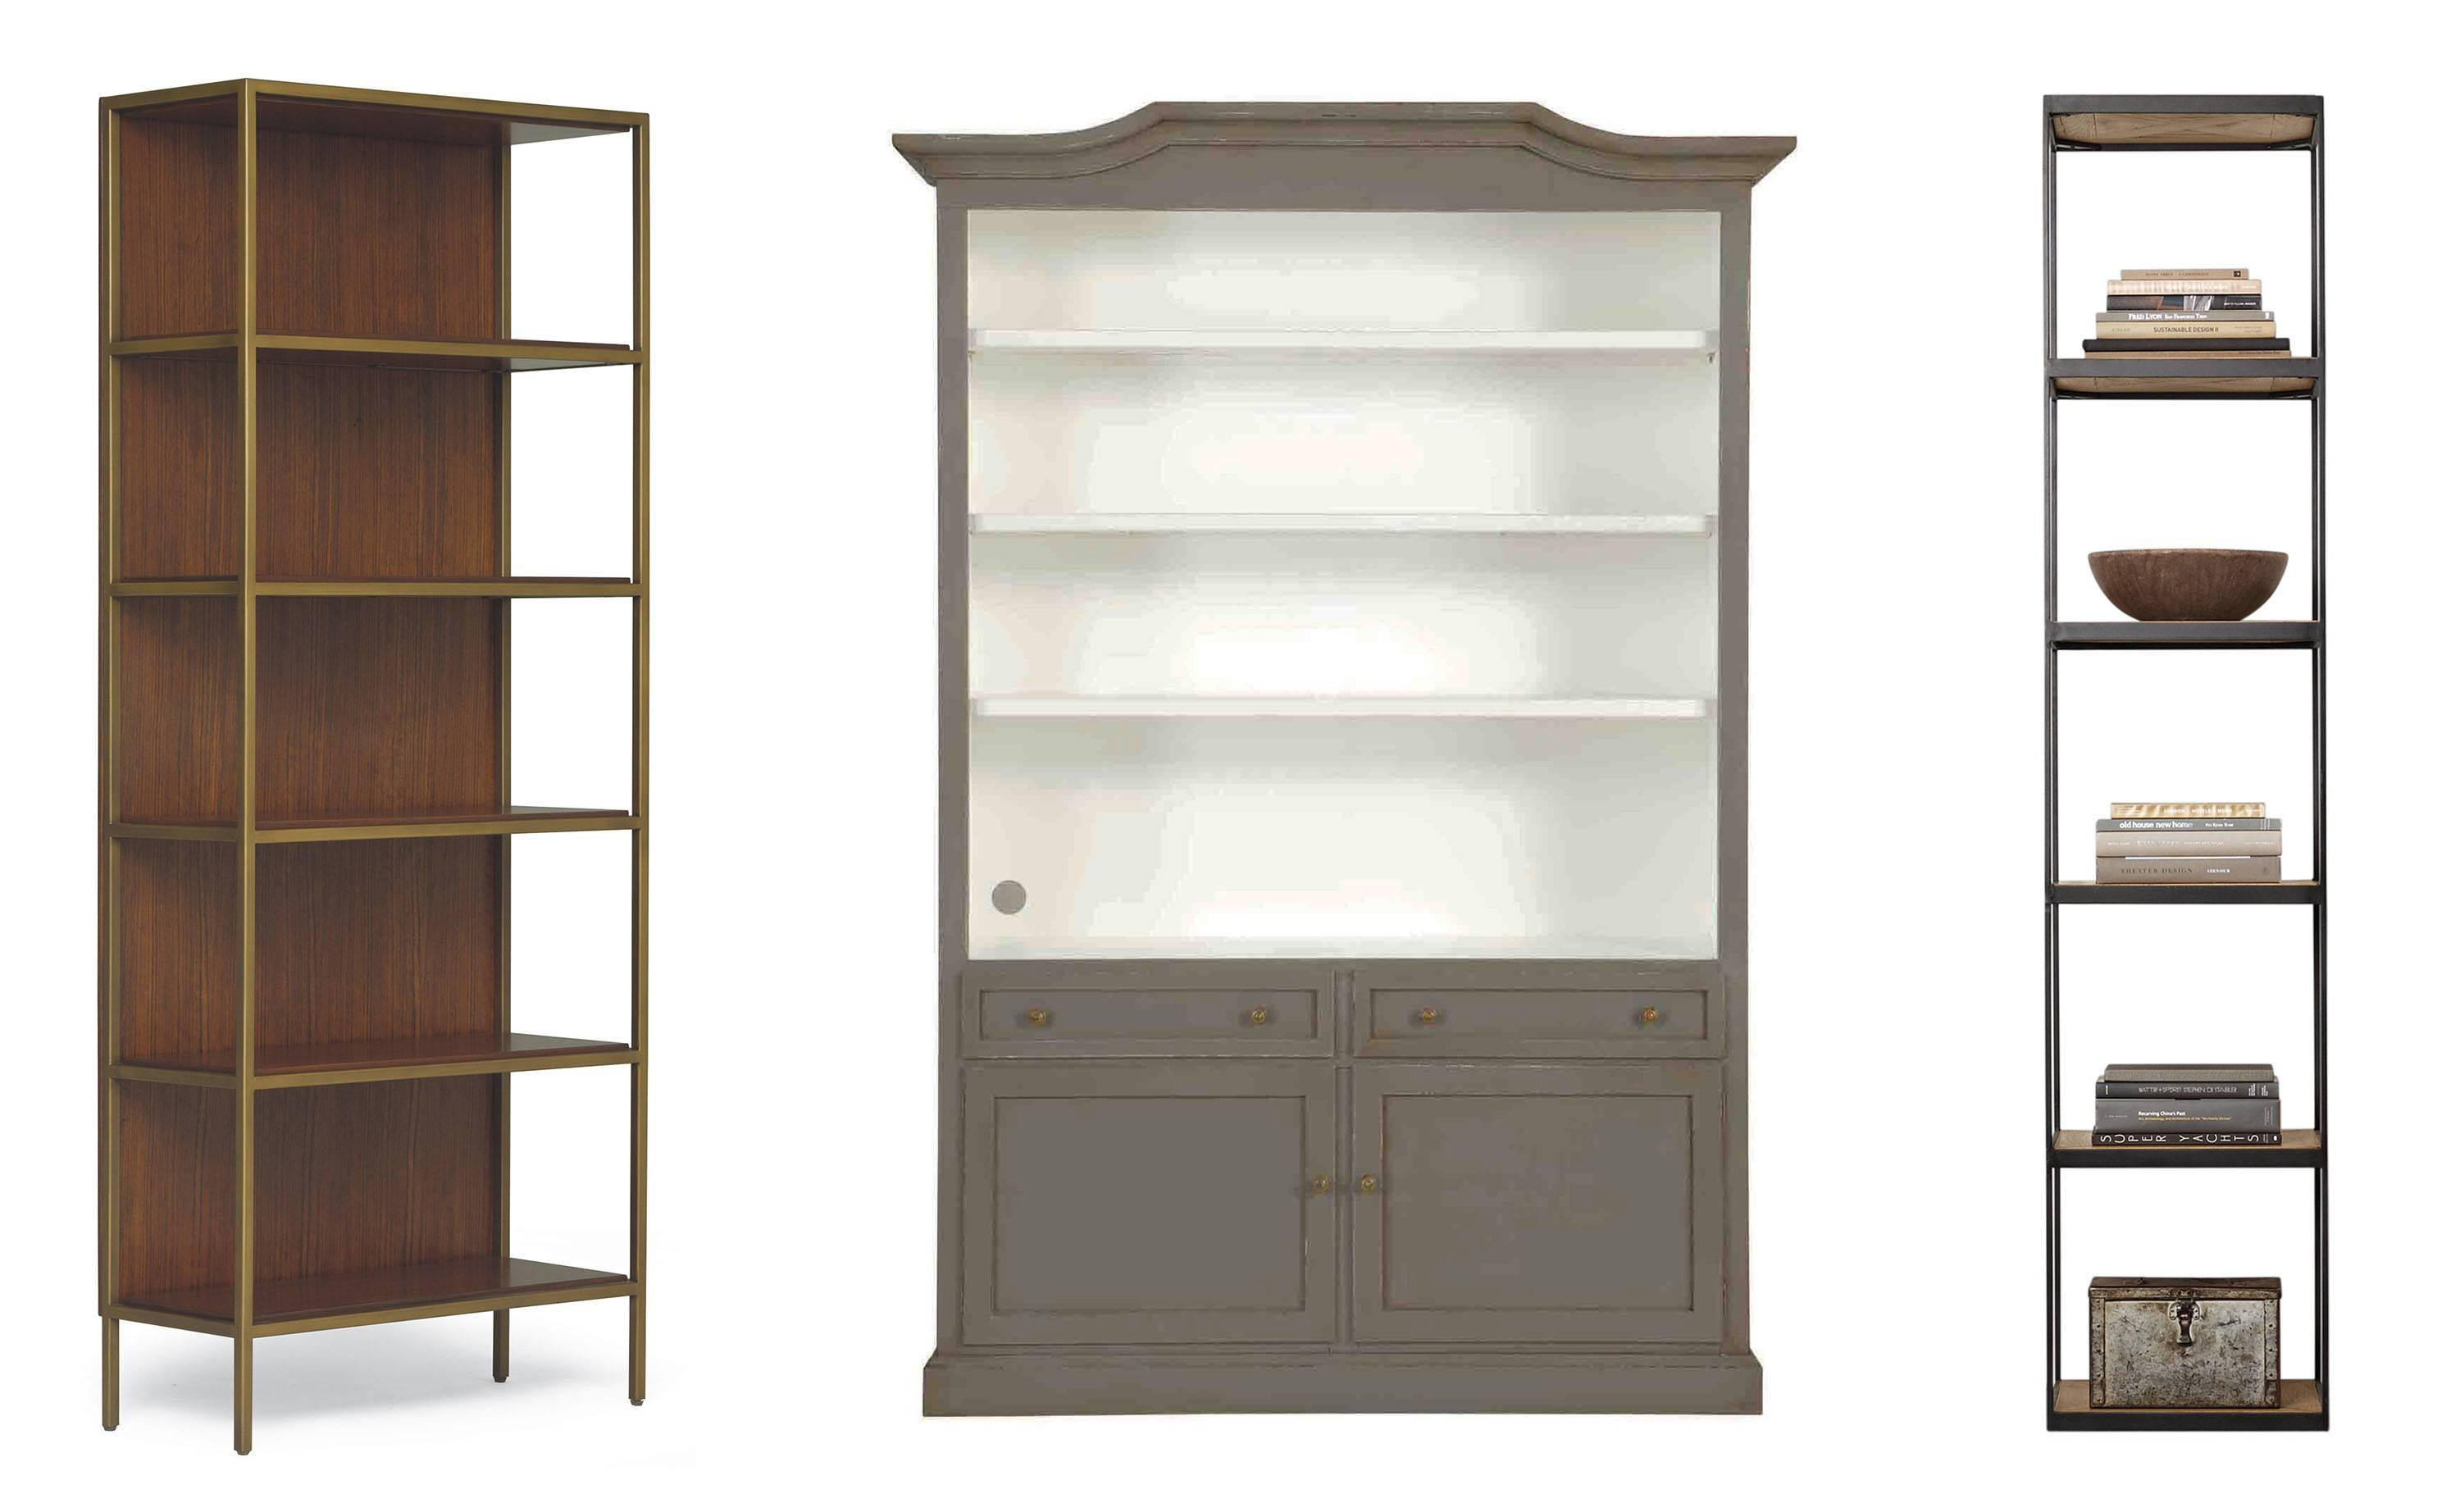 The lack of sides on the VanDyke bookcase will lend spaciousness to a room (left); the Josephina bookcase from Ballard Design recalls Old World style (center); the Russian Reclaimed Tower's narrow shelves from Restoration Hardware lend themselves to piling books horizontally (right).